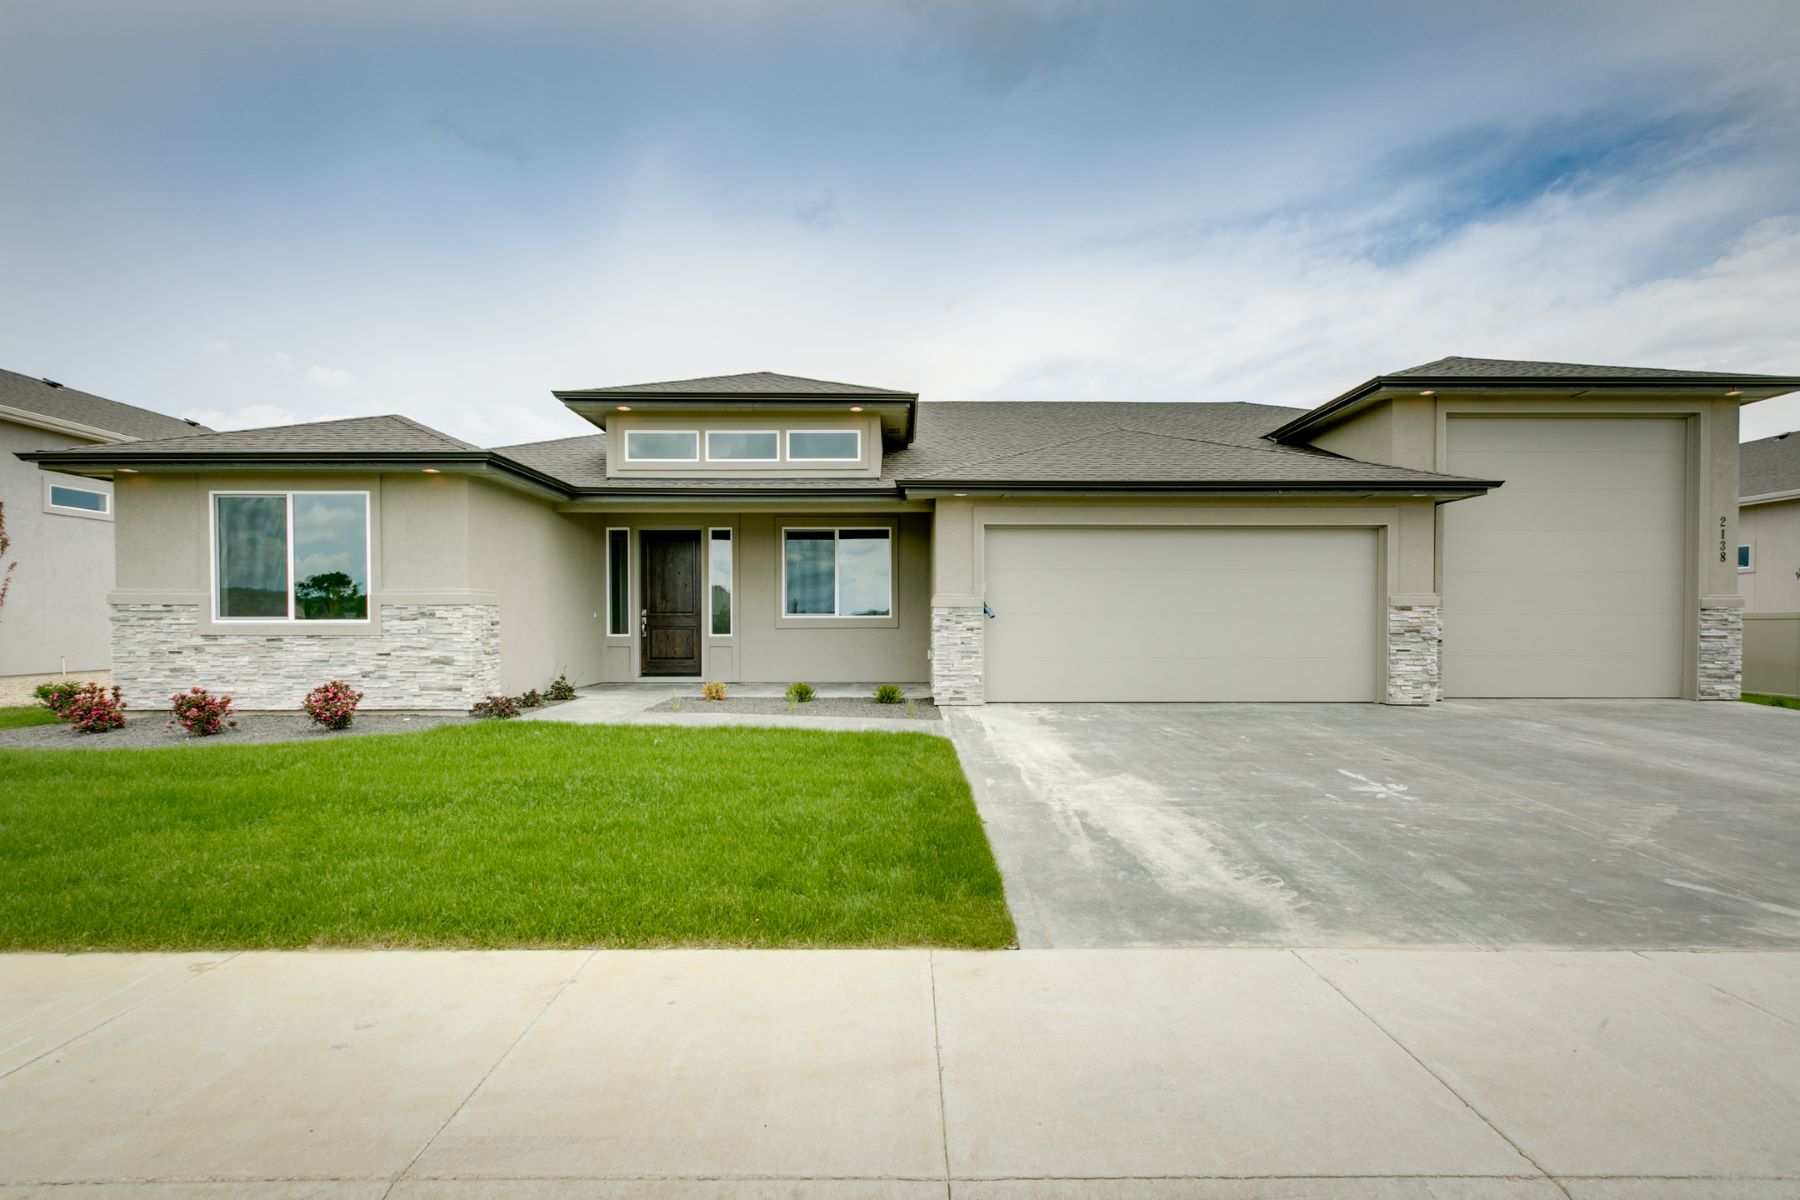 Single Family Home for Active at 1133 Cygnus Way, Star 1133 N Cygnus Way Star, Idaho 83669 United States